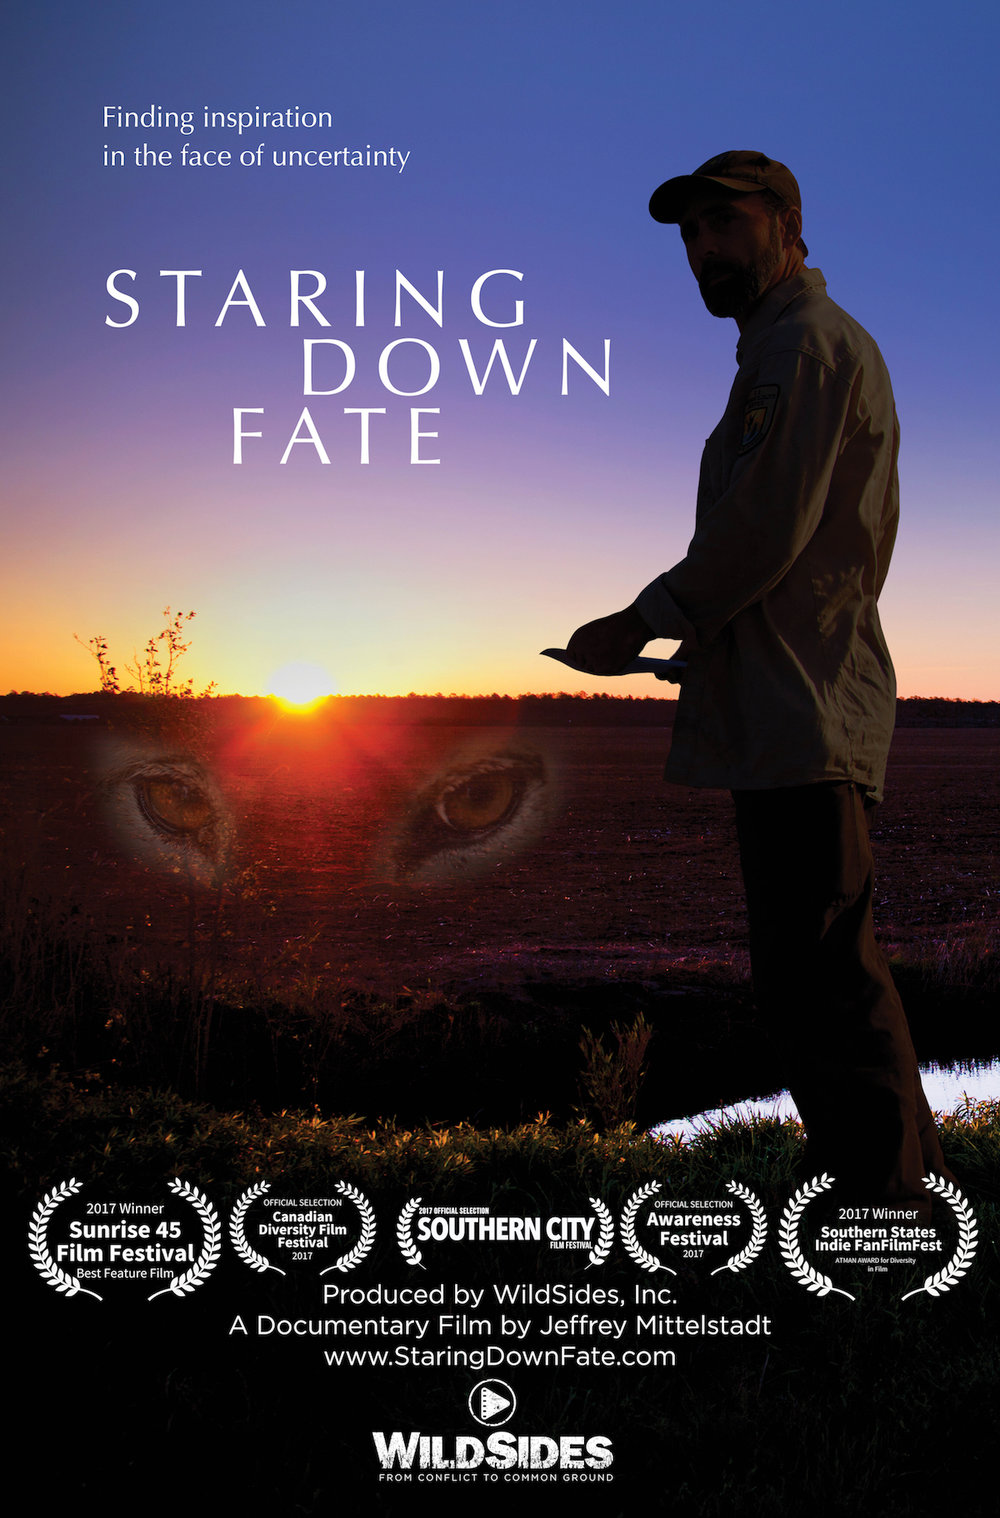 Staring down fate poster 2-02 Larger Laurels_4x6 copy.jpg